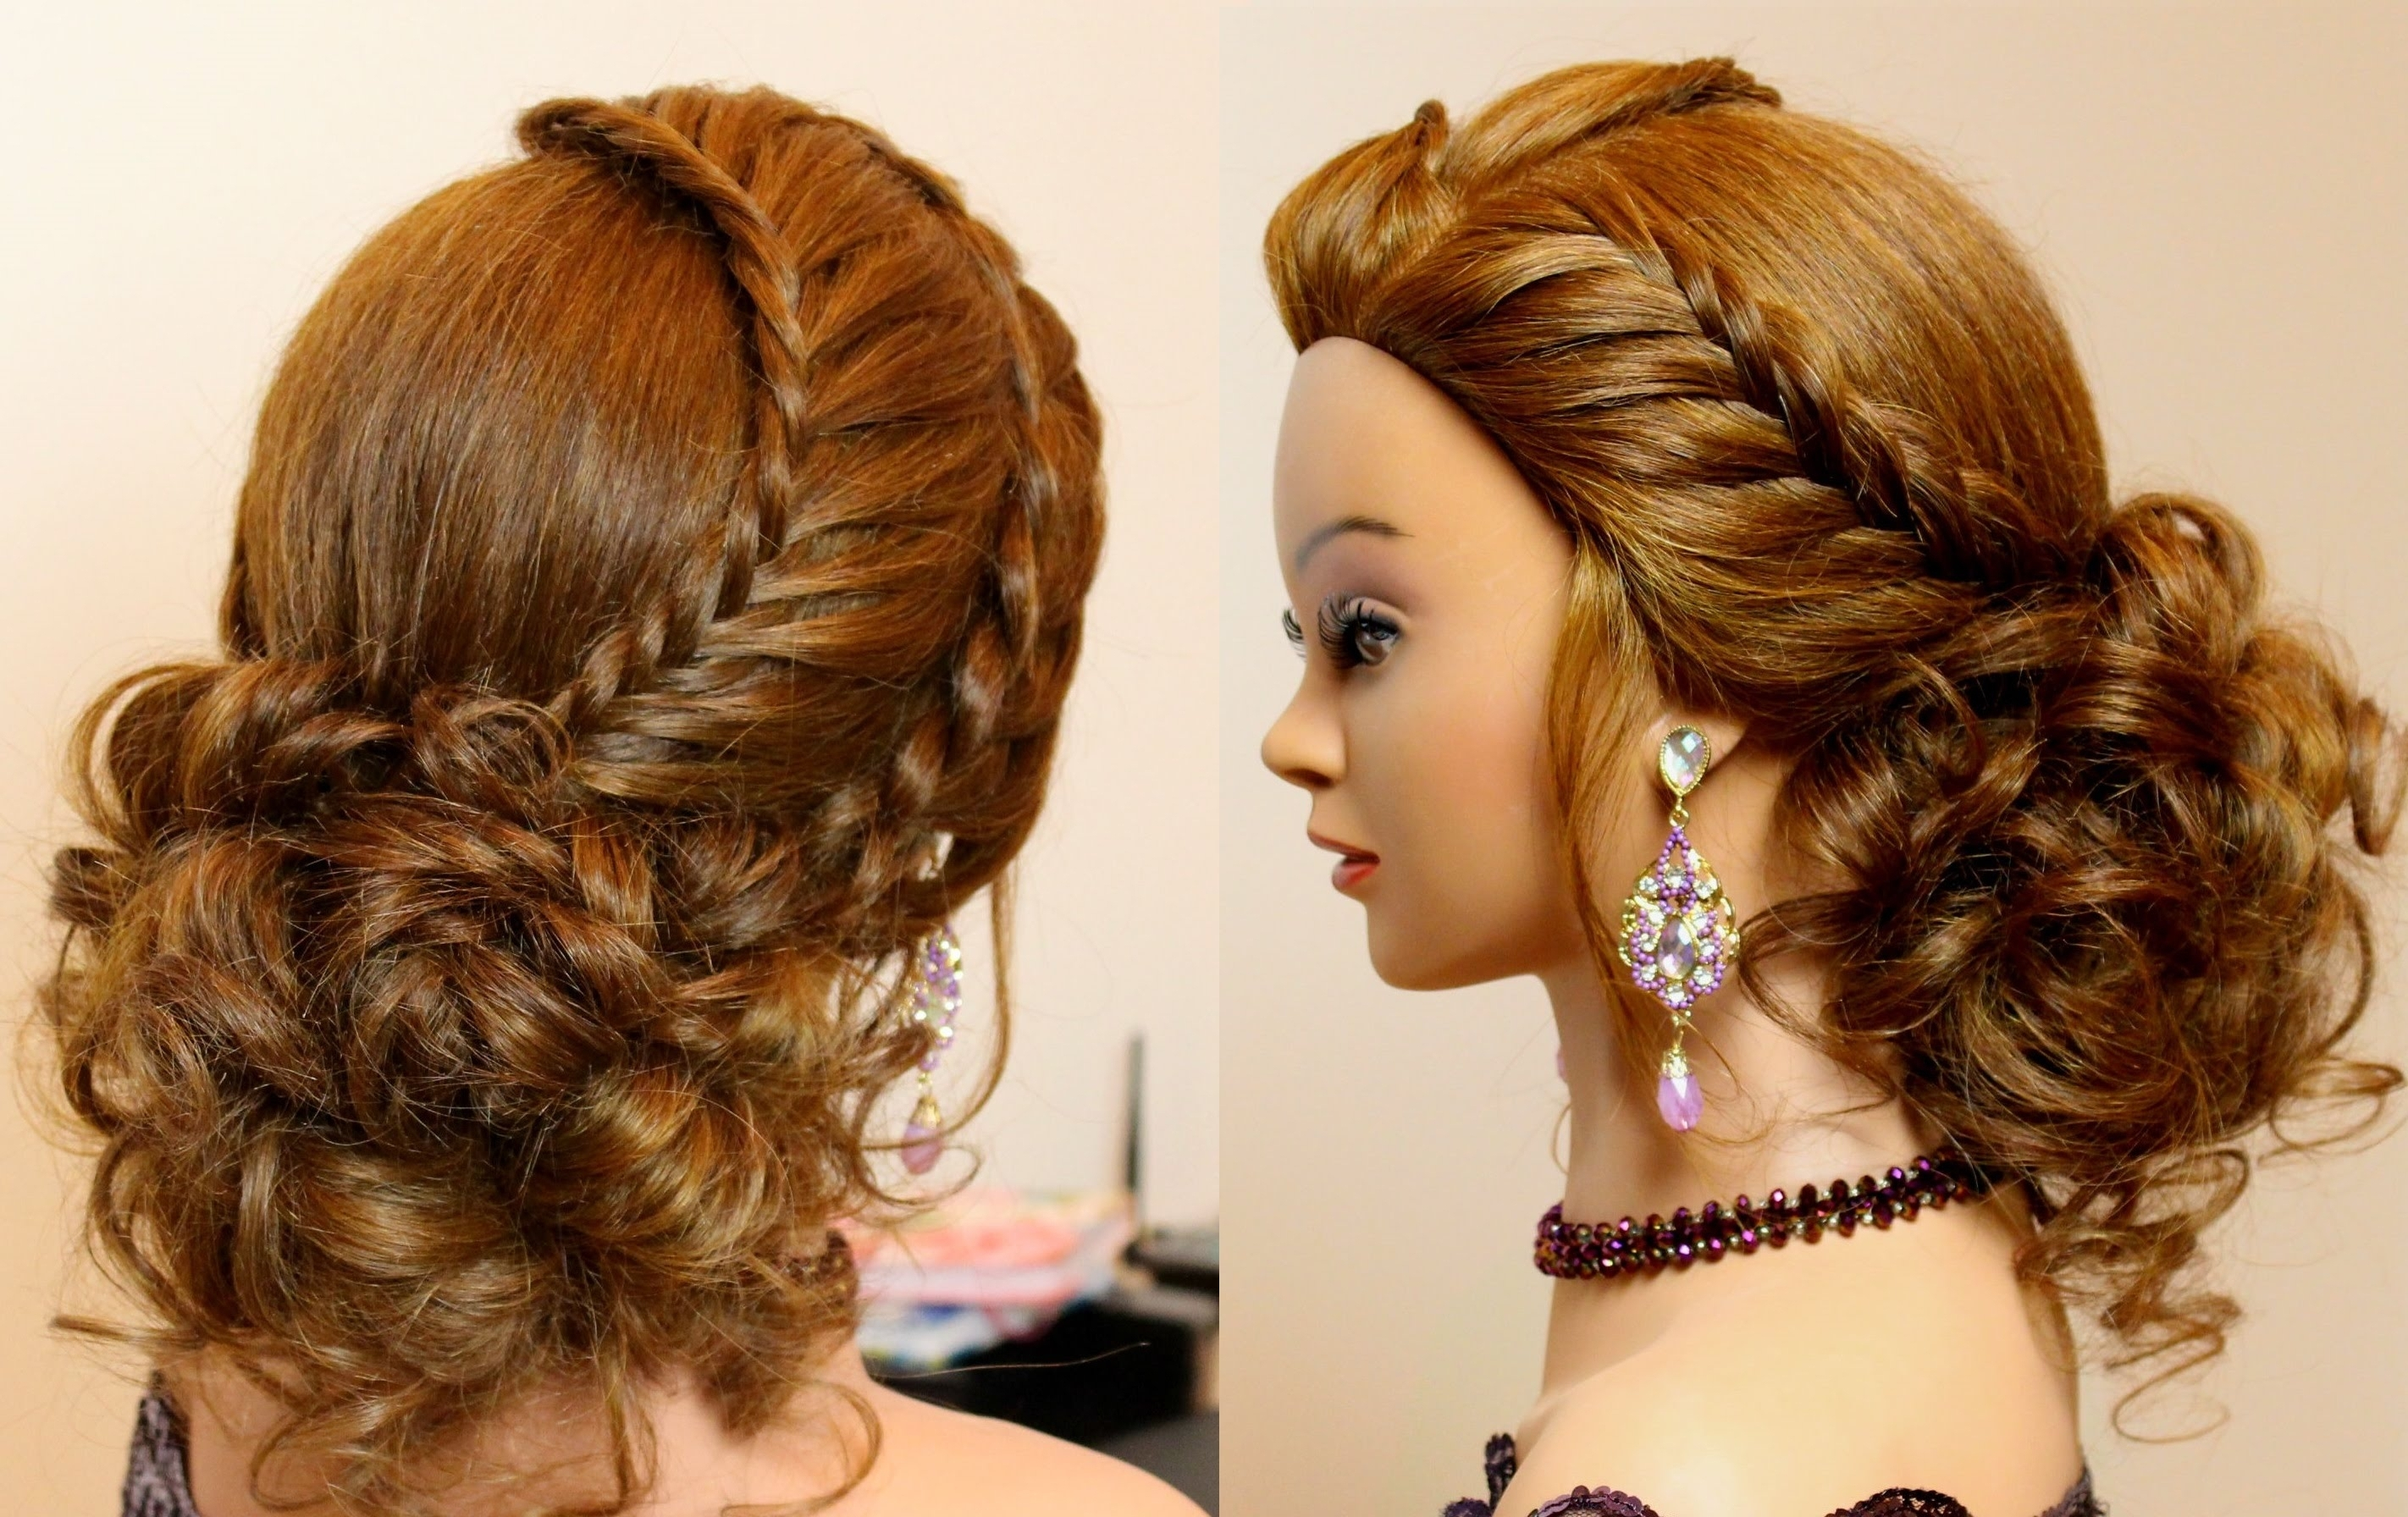 Fancy Updo Hairstyles For Long Hair Updos For Long Hair Youtube For Fancy Updo Hairstyles For Long Hair (View 10 of 15)